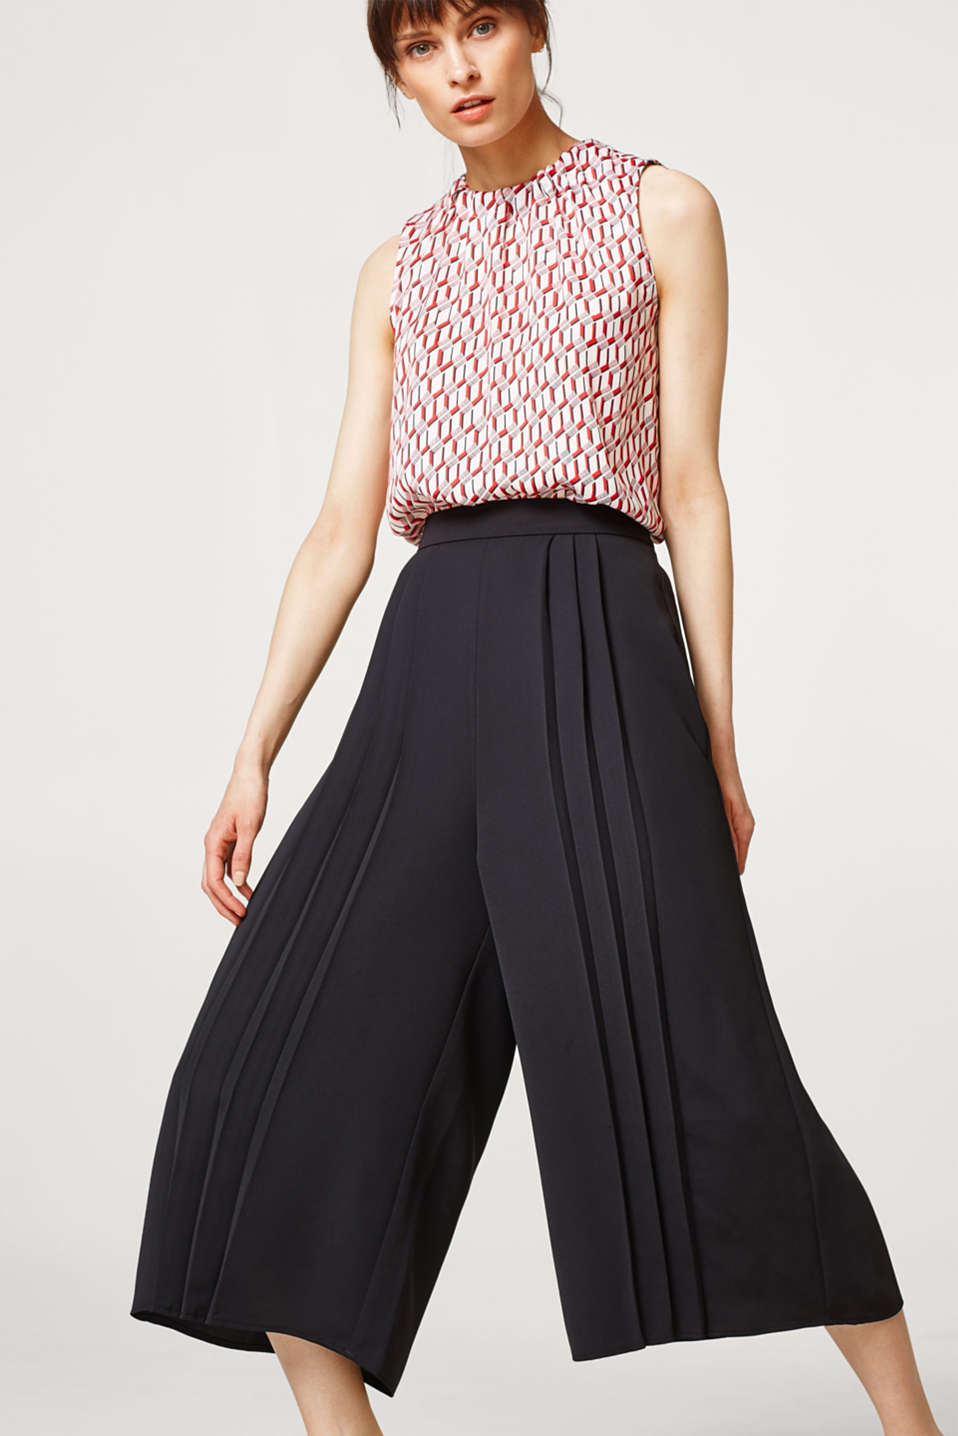 Esprit - Light culottes with pleats and an elasticated waistband